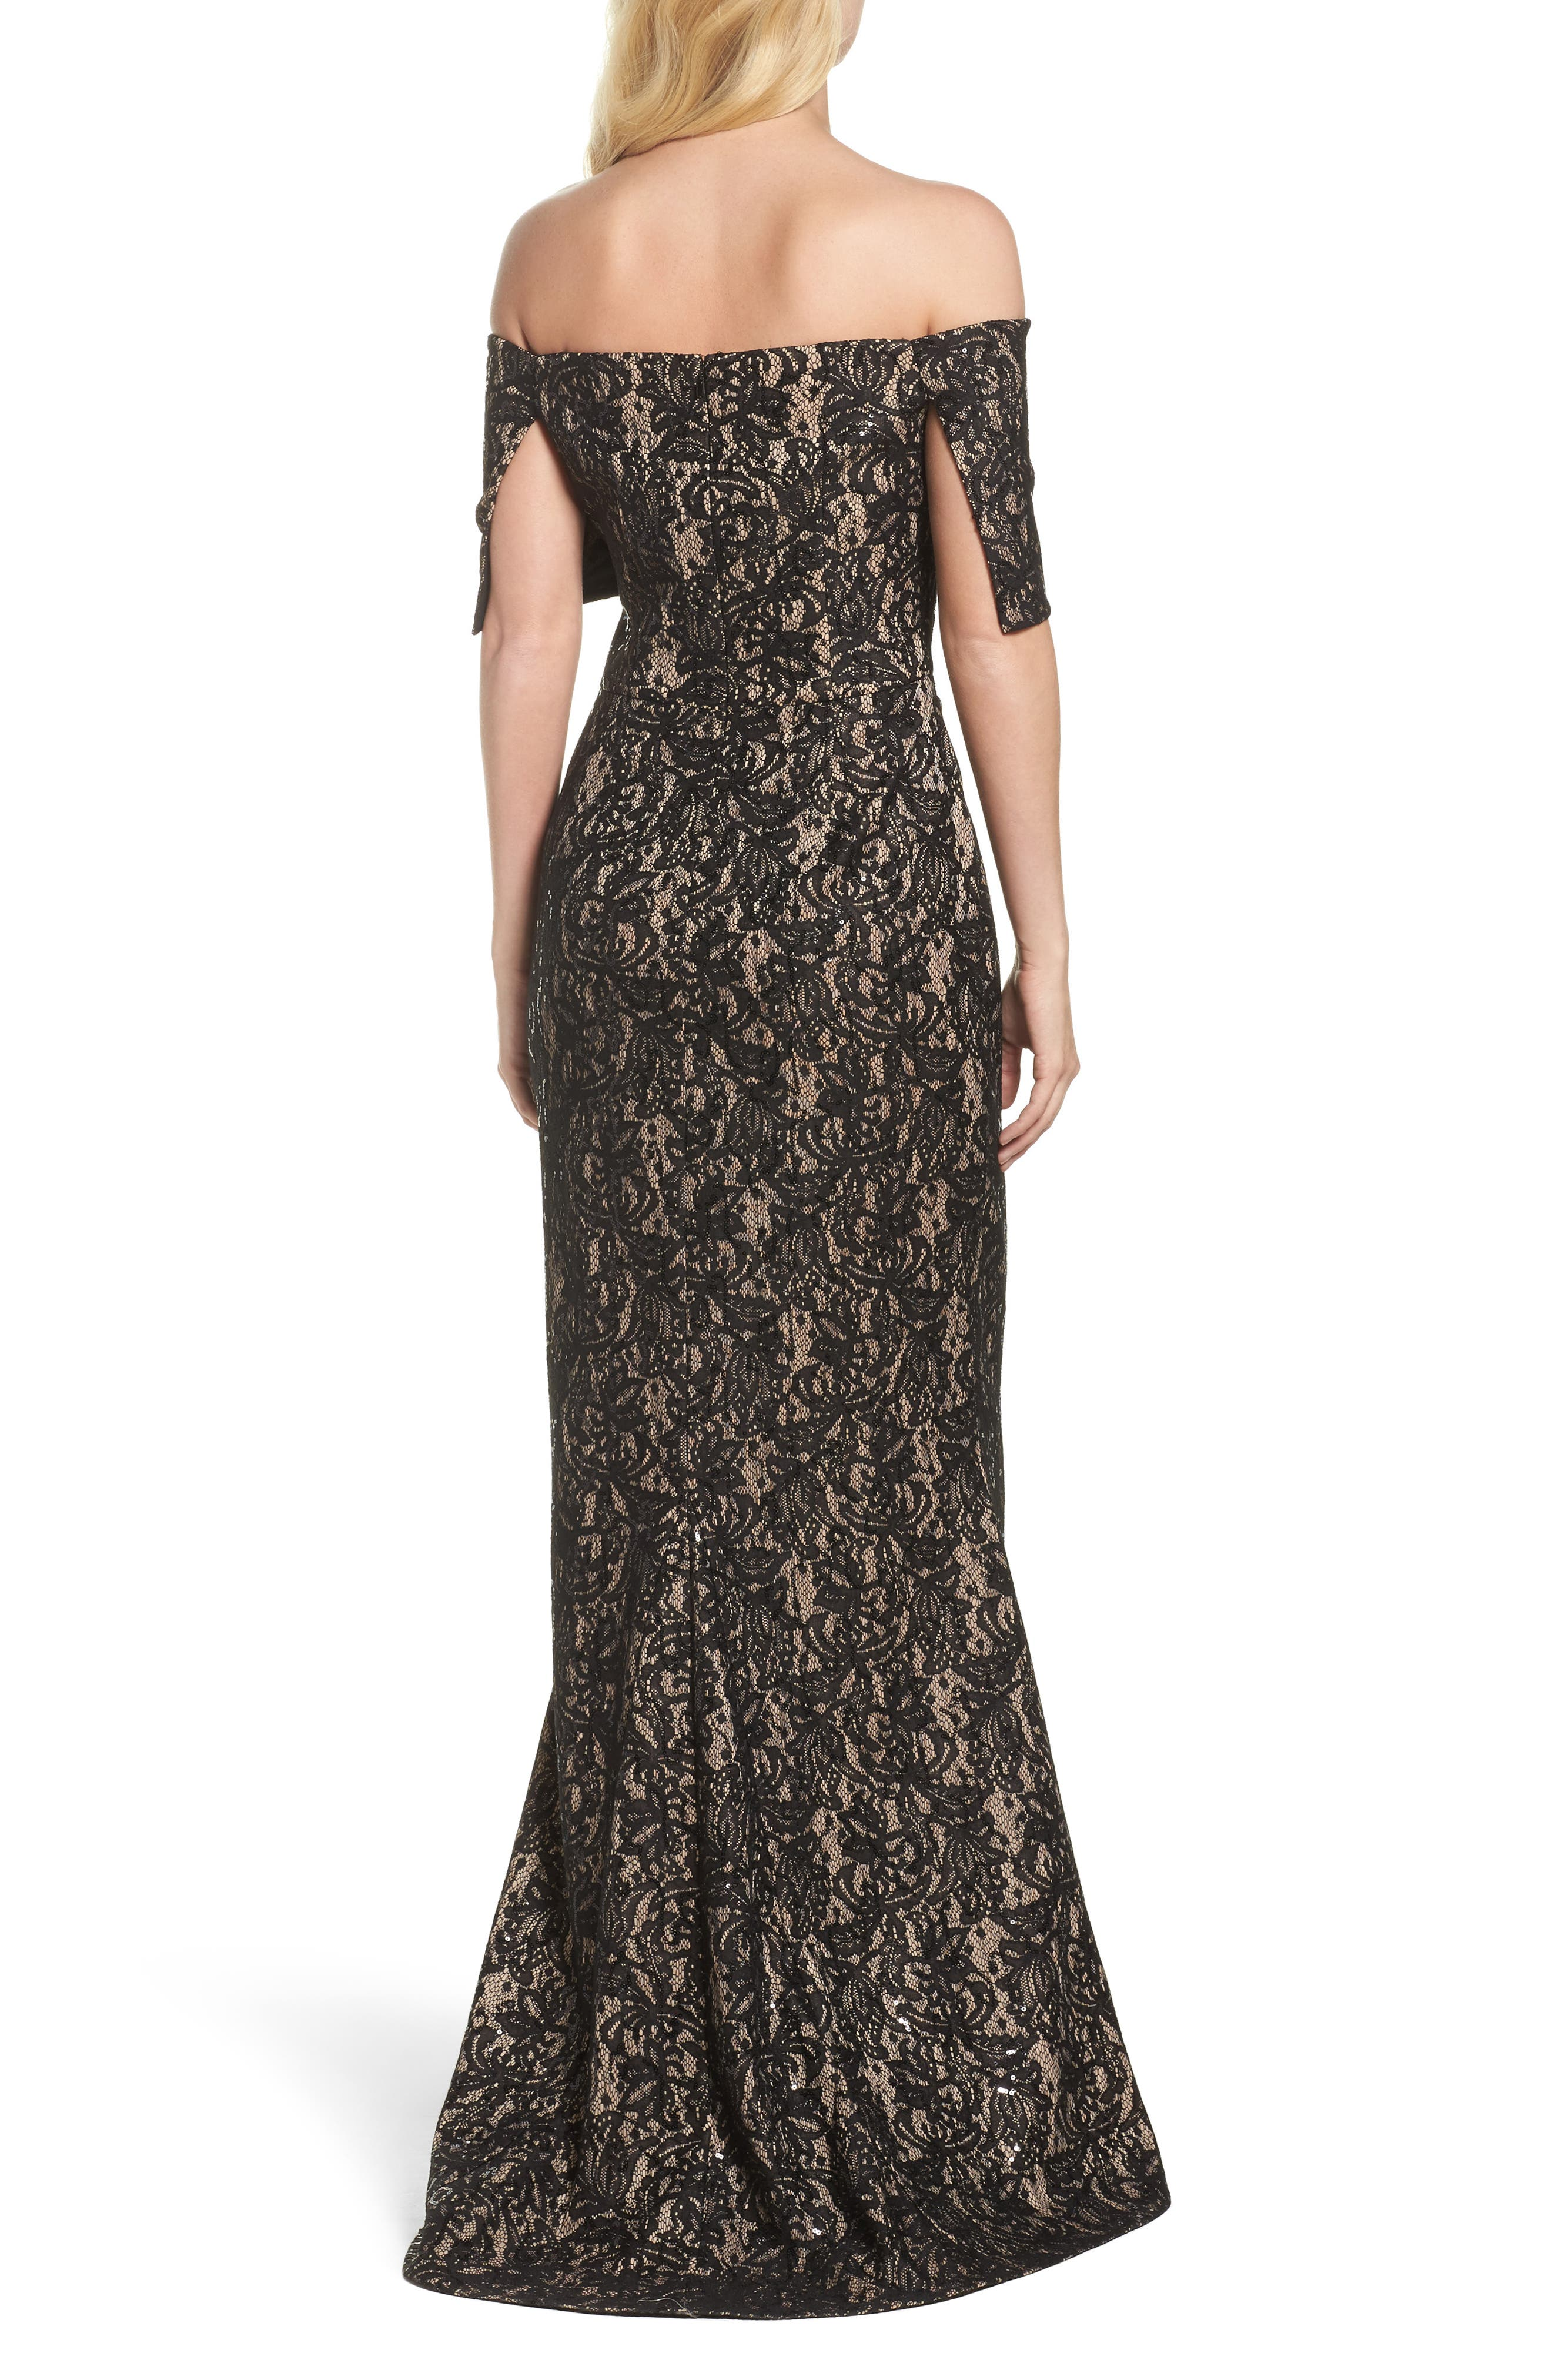 VINCE CAMUTO,                             Sequin Off the Shoulder Gown,                             Alternate thumbnail 2, color,                             BLACK/ TAN